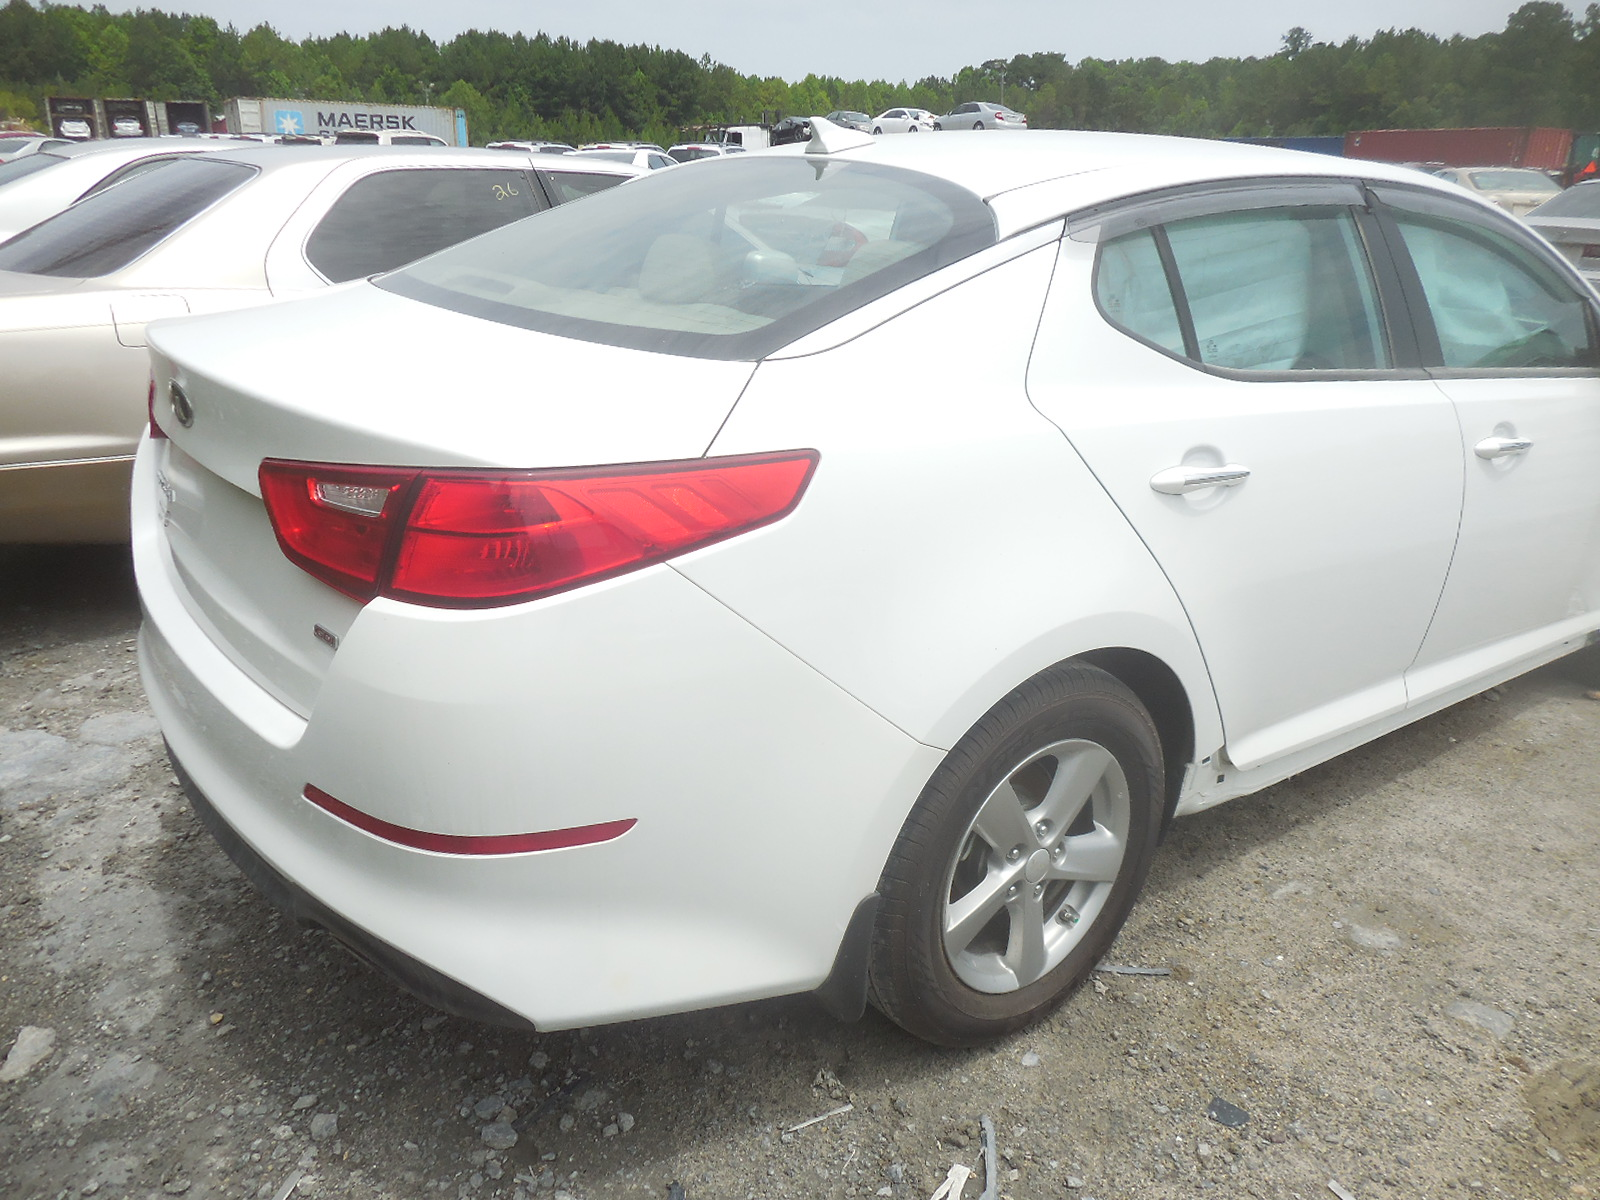 kia optima lx 2015 kia optima lx cars car photos share your car. Black Bedroom Furniture Sets. Home Design Ideas